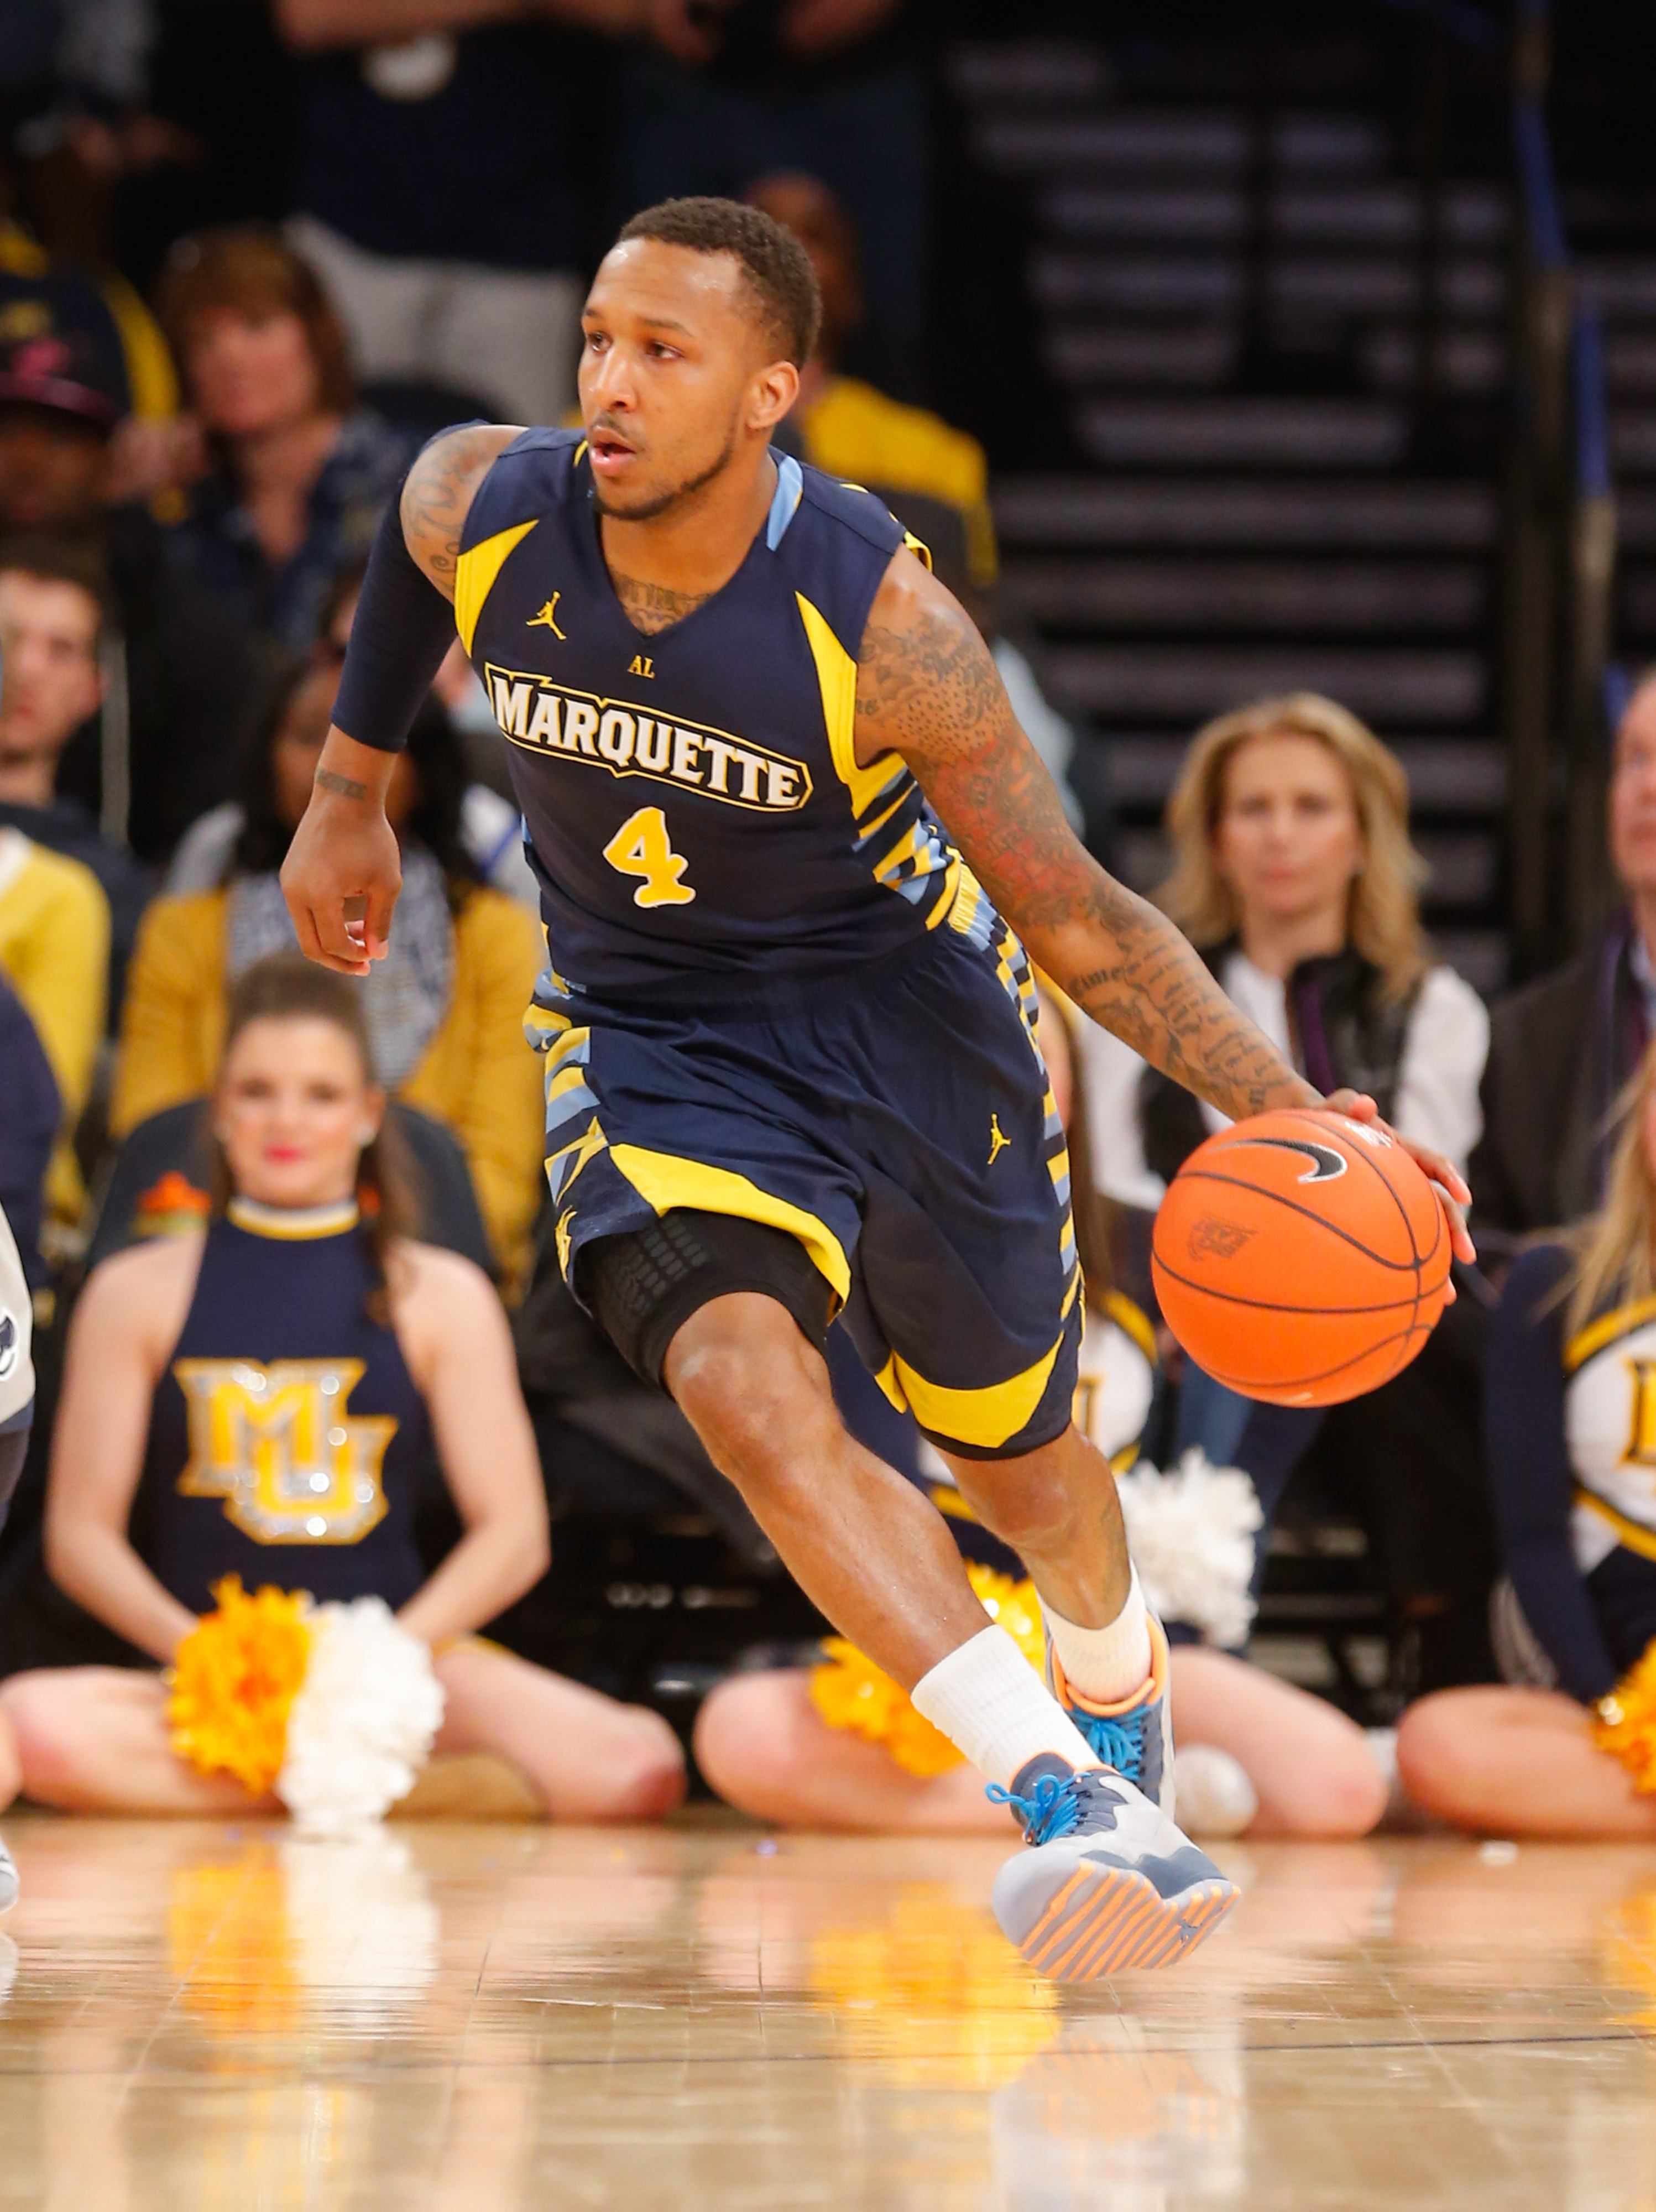 Marquette guard Todd Mayo (11.3 ppg) has left the team to pursue professional opportunities.